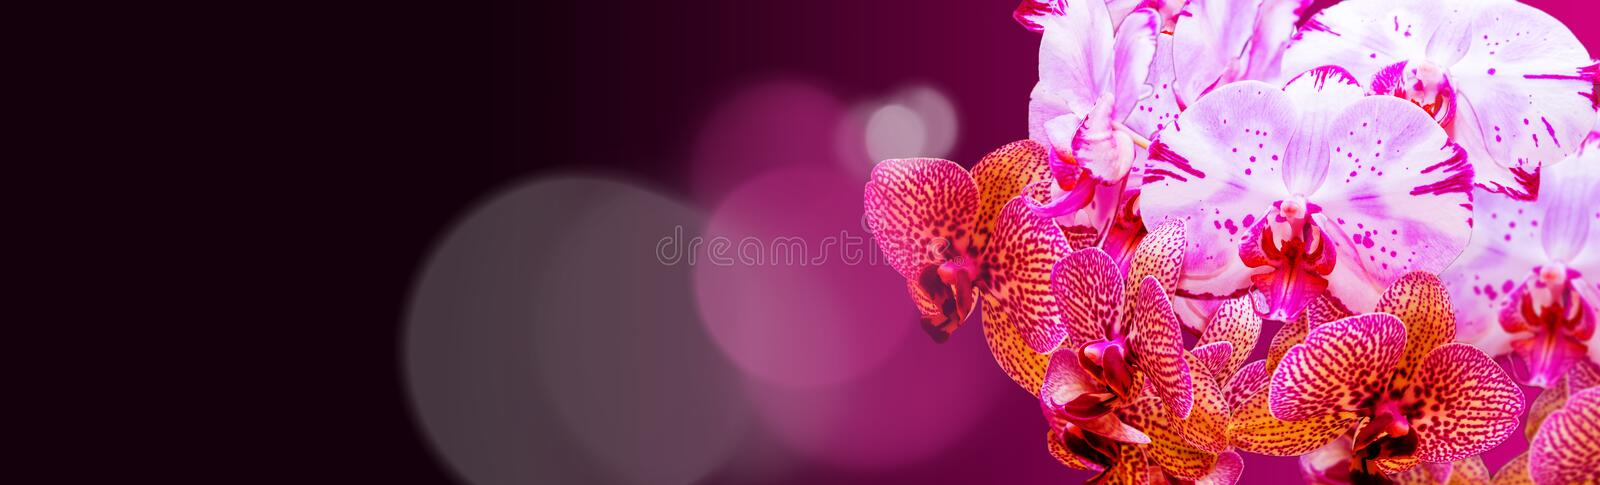 Colorful orchid panorama royalty free stock photos